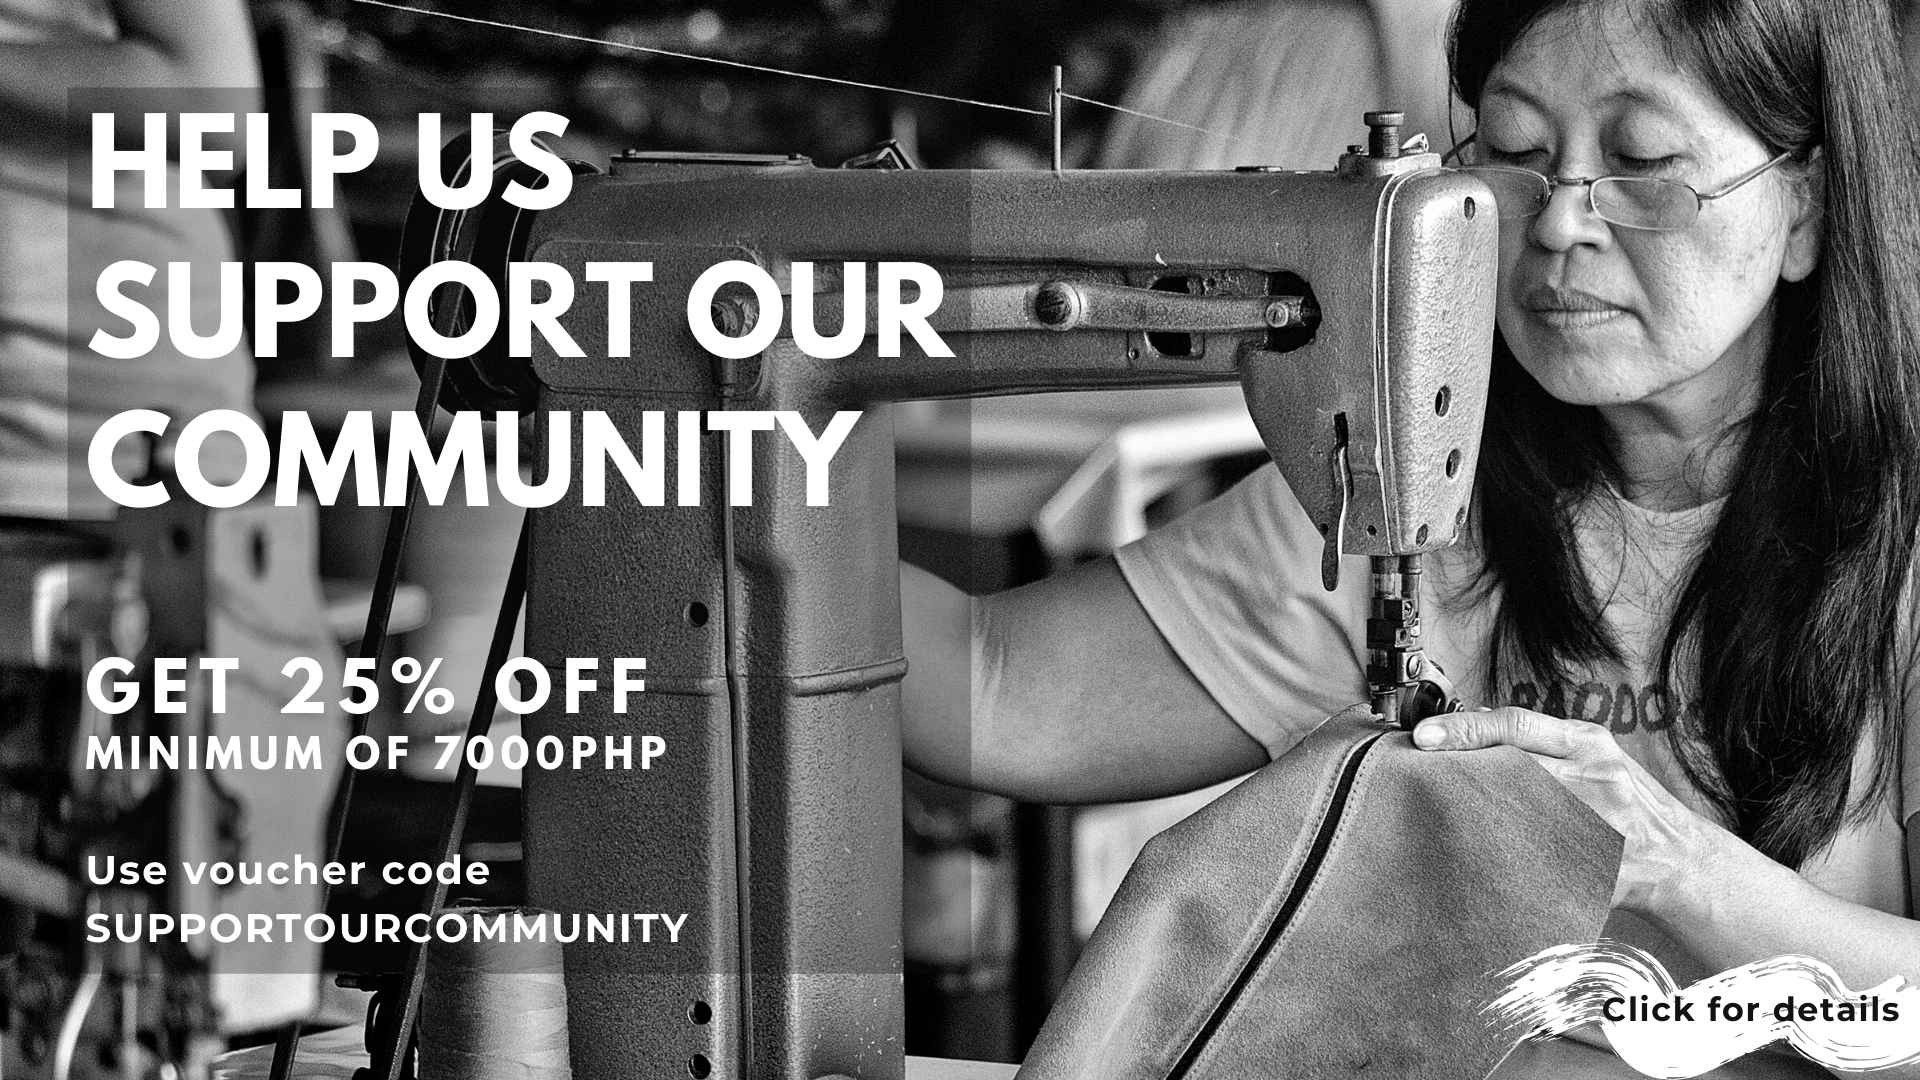 Help us support our community